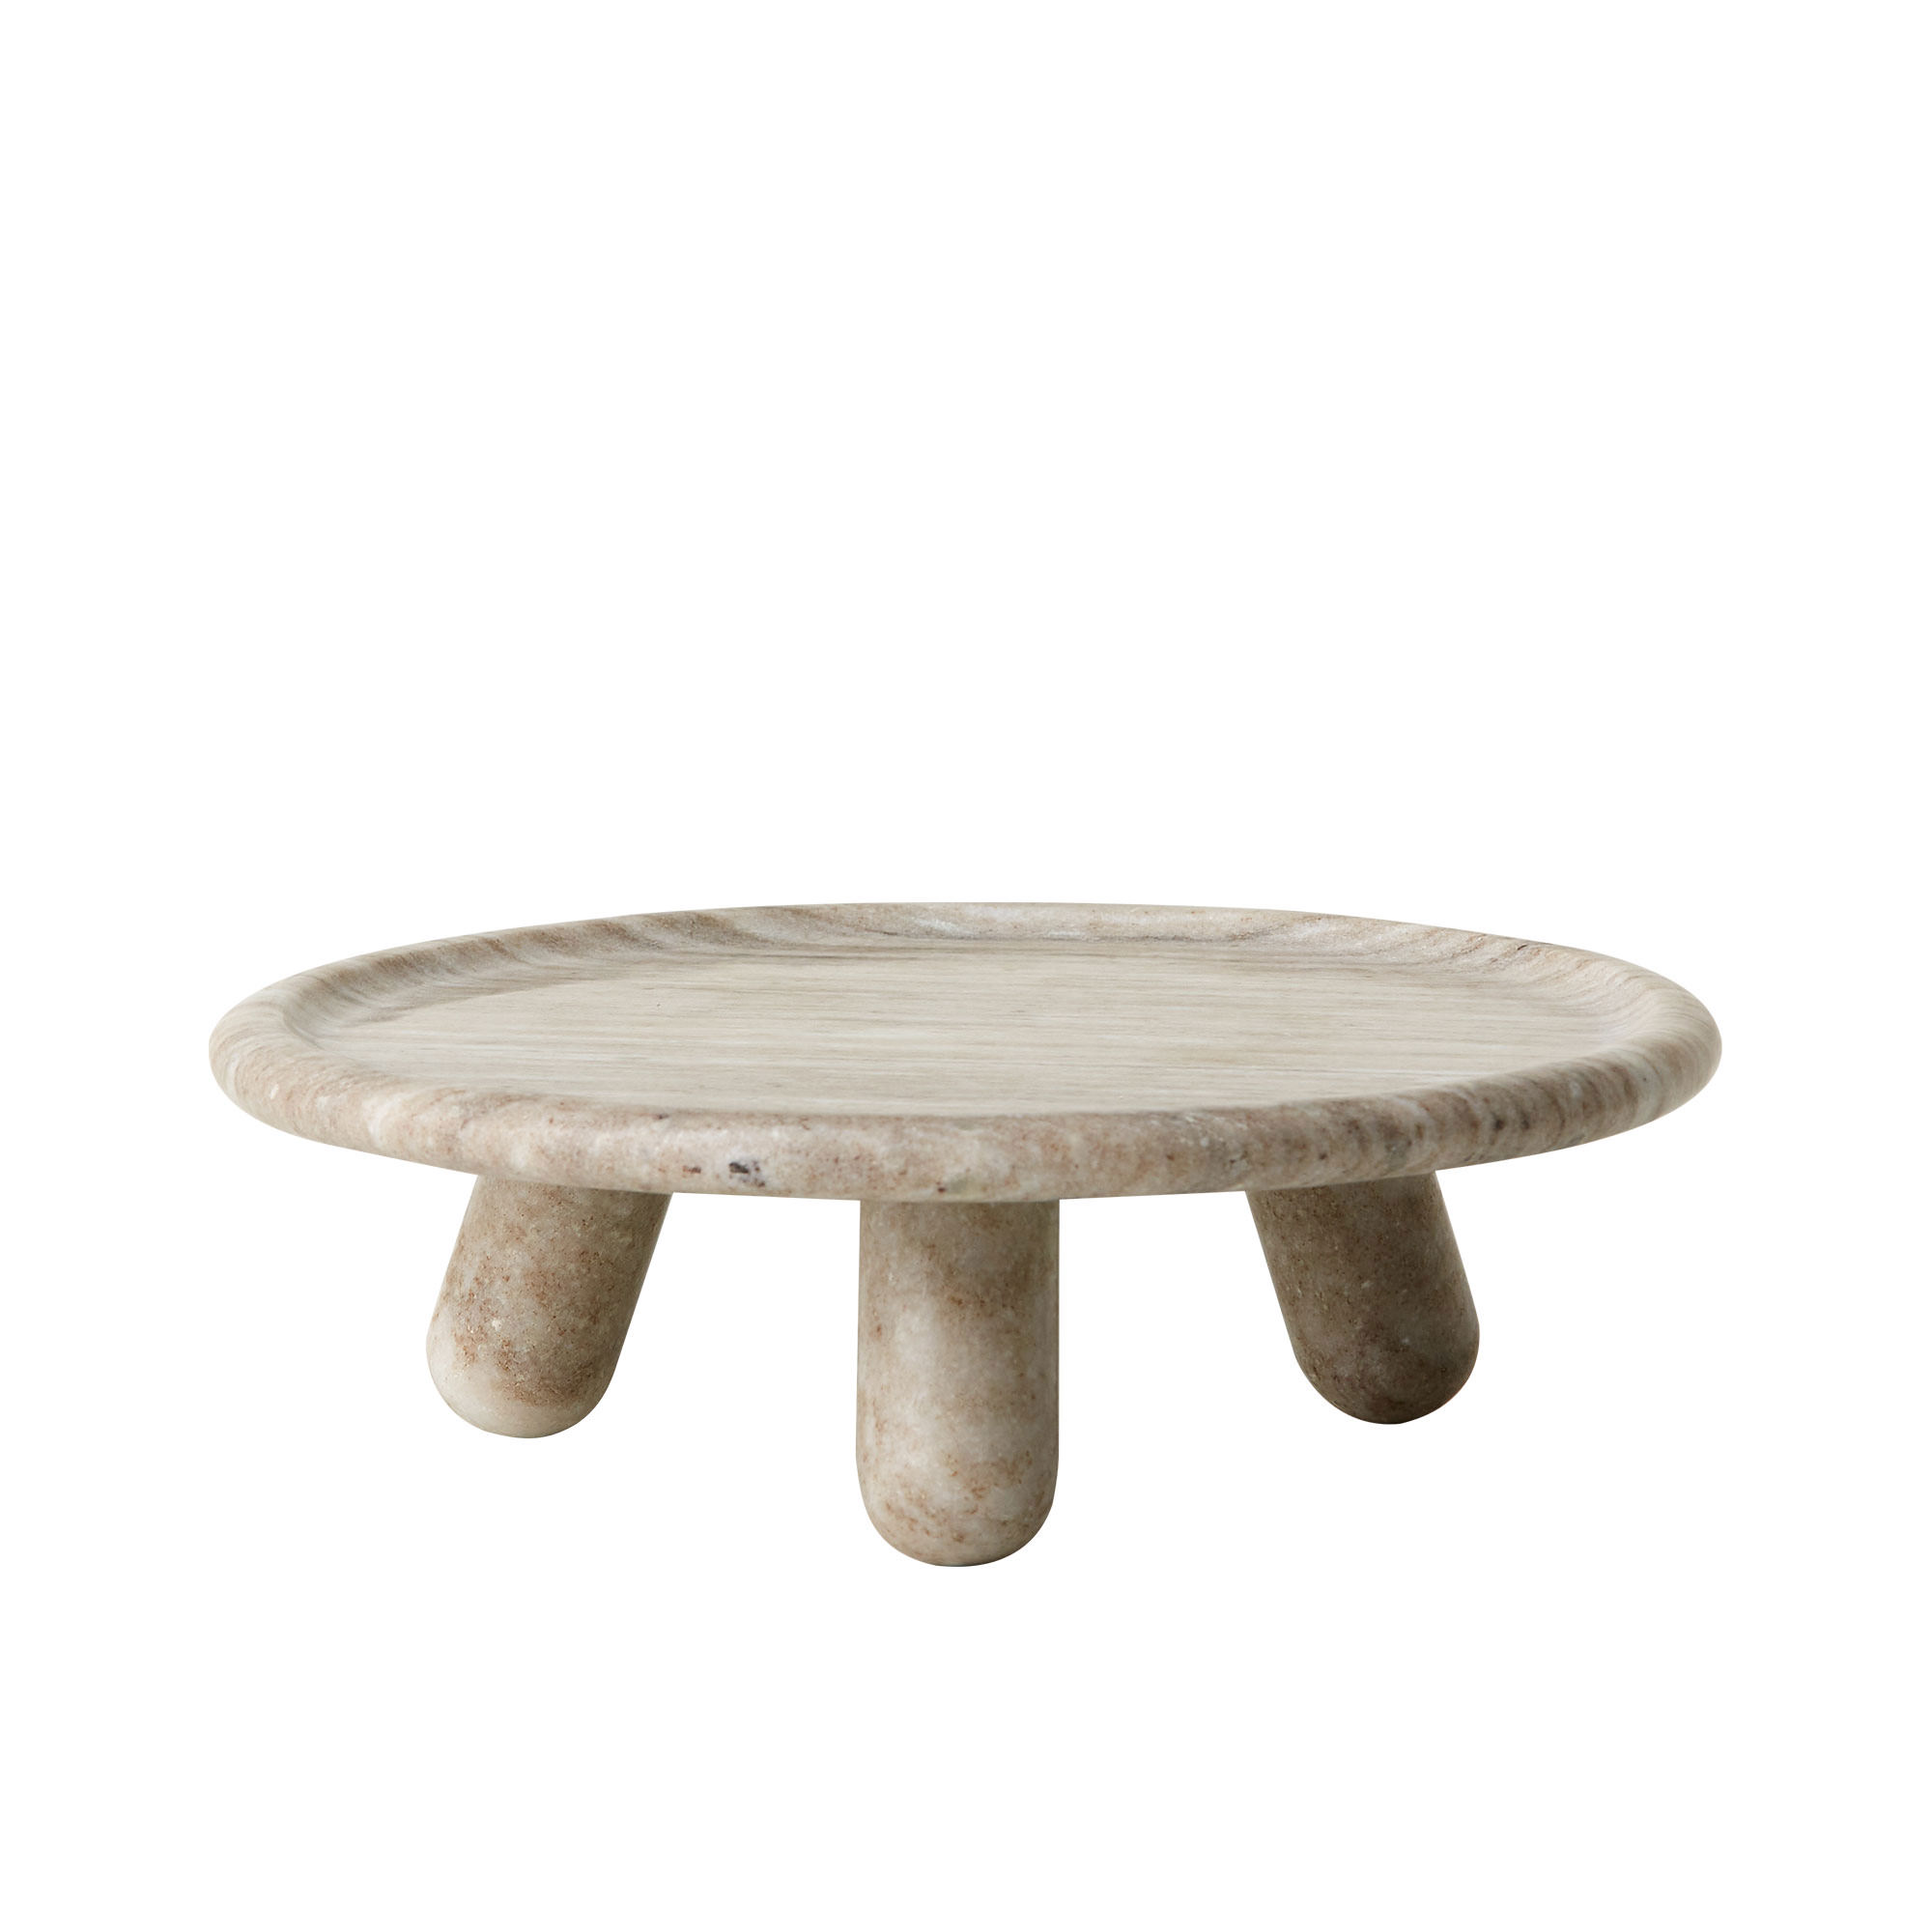 Salisbury & Co Tusca Cake Stand Small 25x7cm Grey